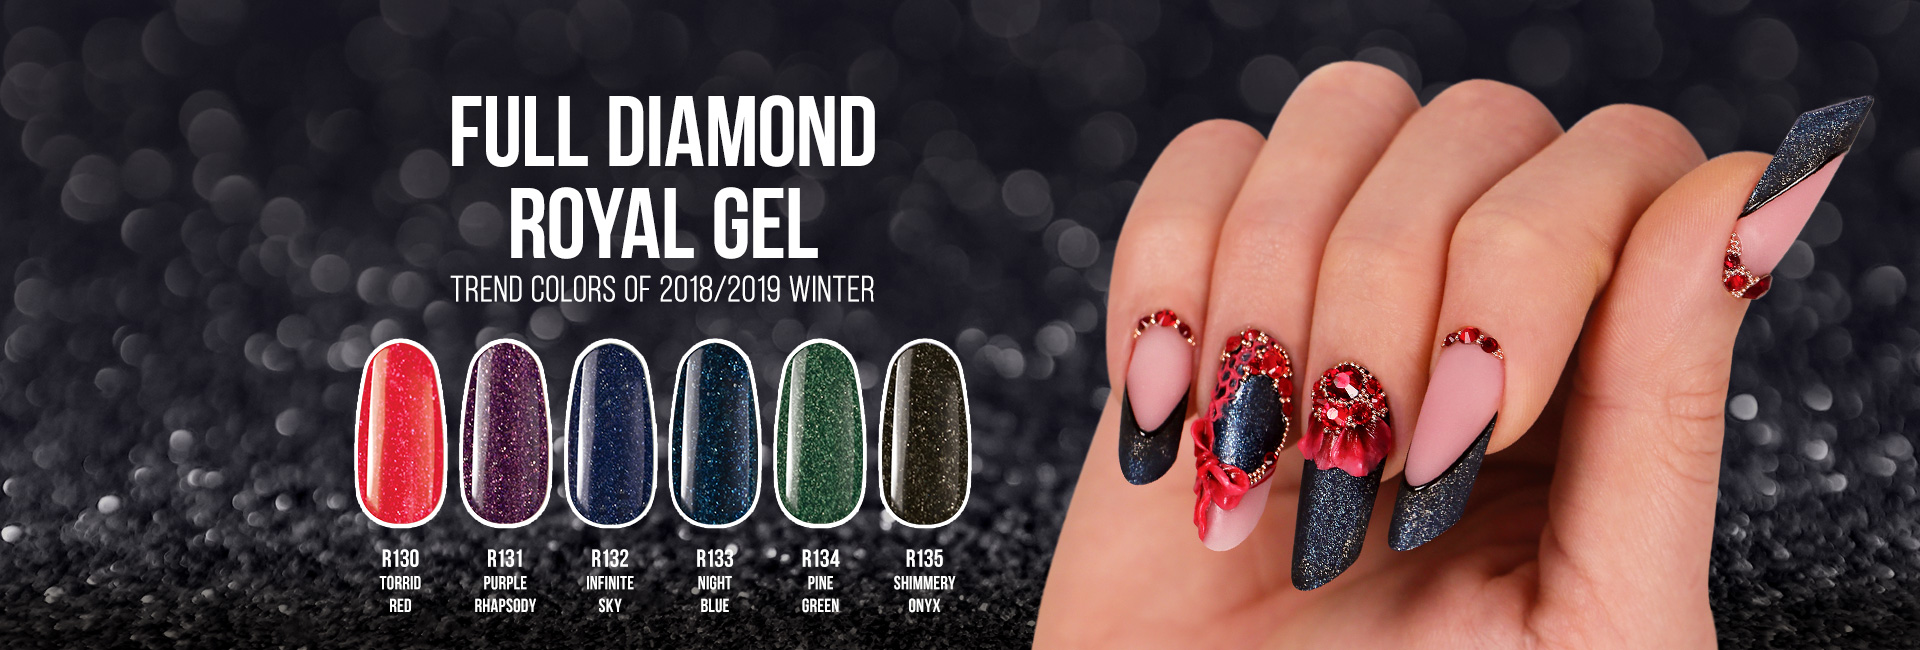 Full Diamond Royal Gels Winter 2018